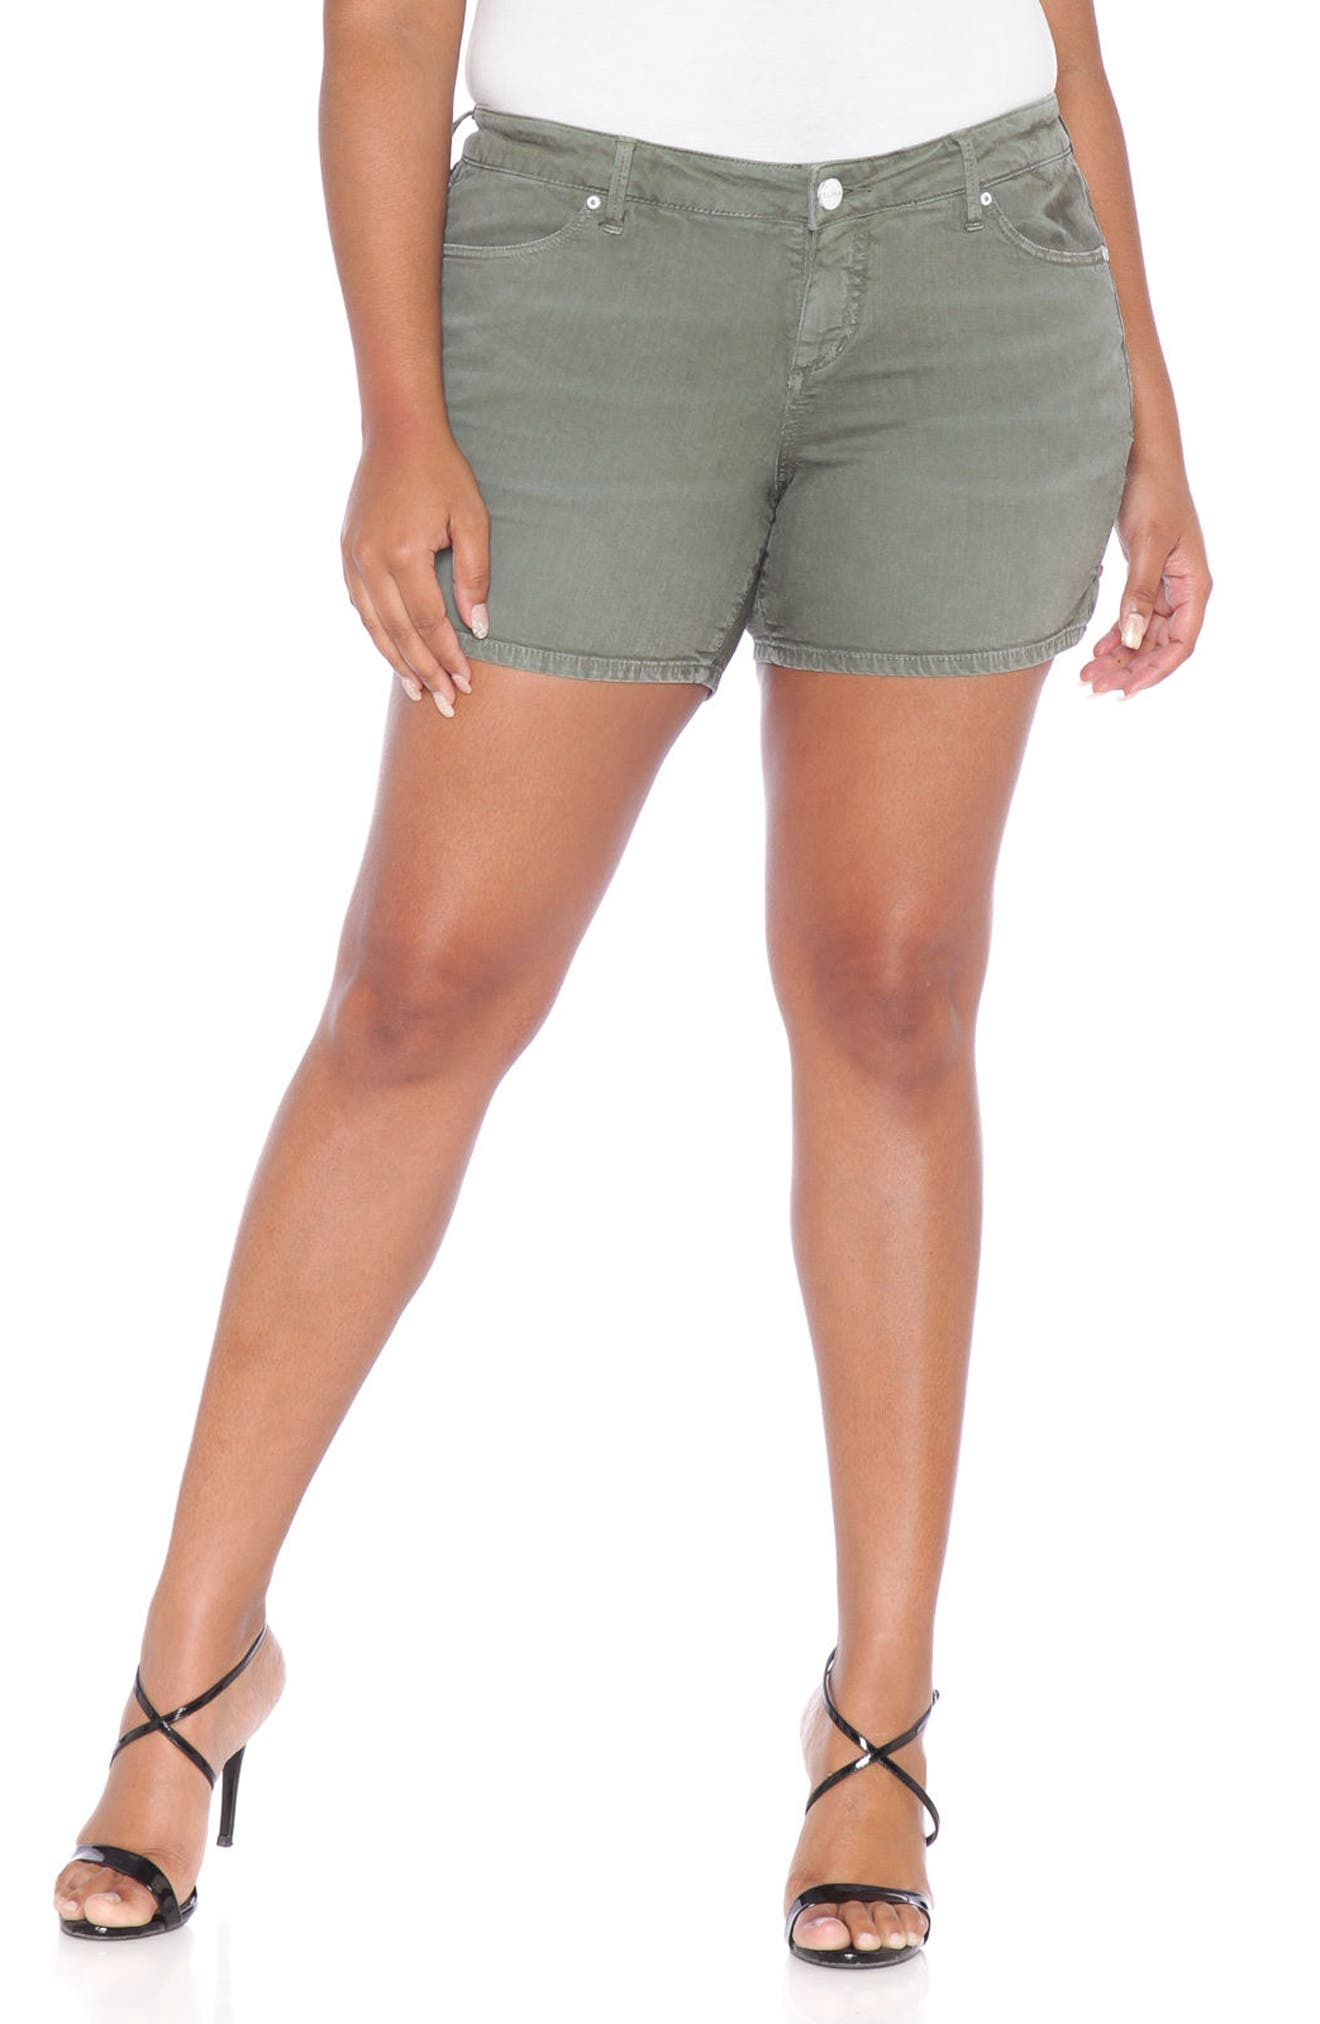 Alternate Image 1 Selected - SLINK Jeans Stretch Twill Shorts (Plus Size)